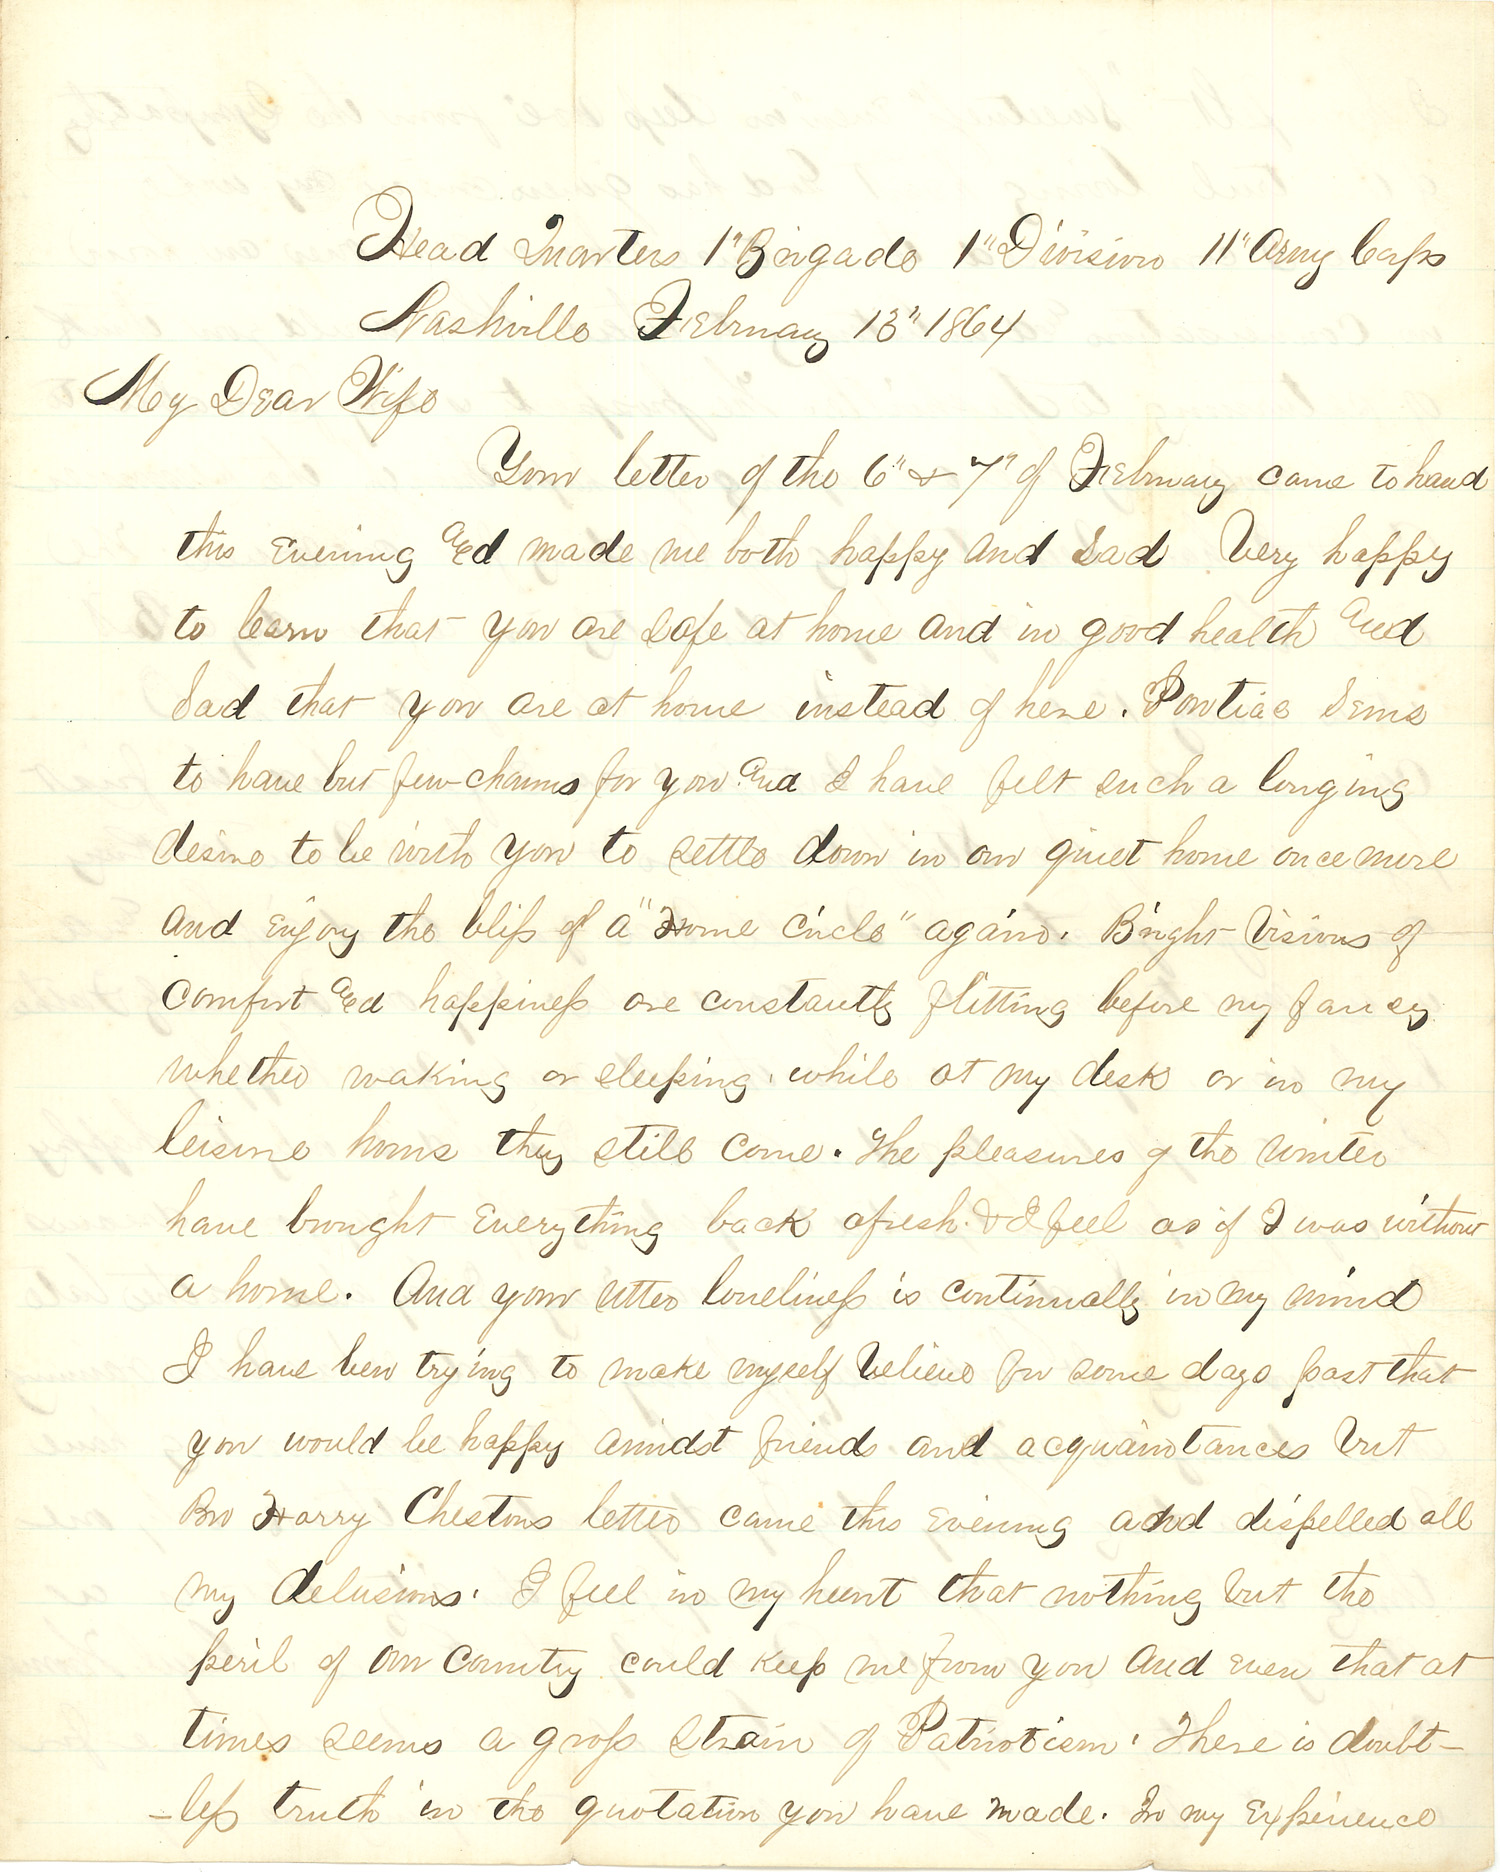 Joseph Culver Letter, February 13, 1864, Page 1